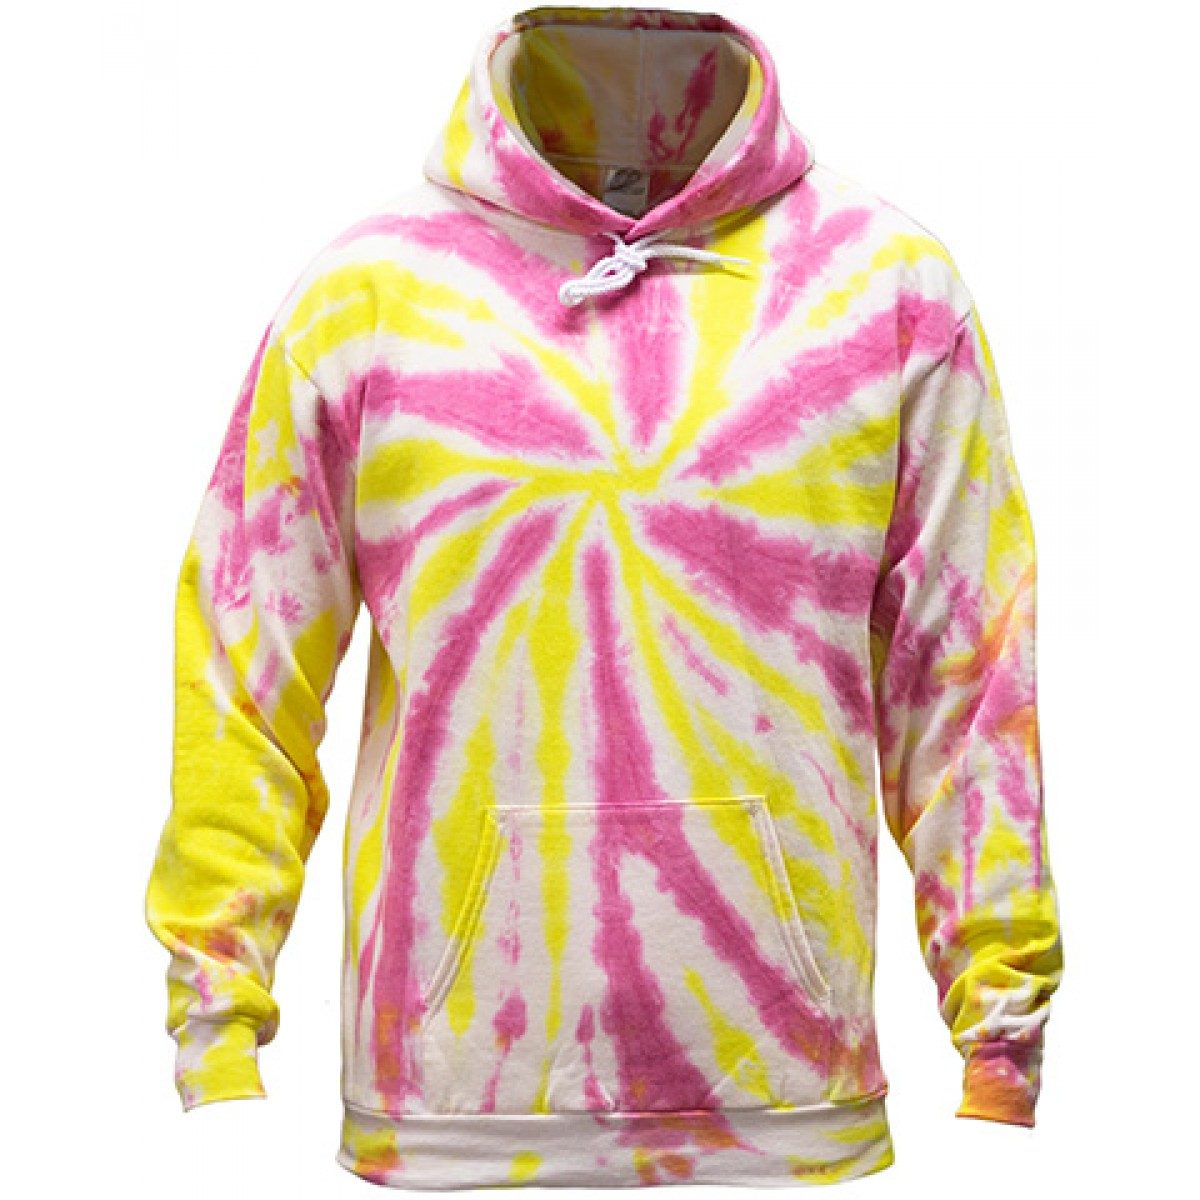 Tie-Dye Pullover Hooded Sweatshirt-Pink/Yellow-3XL